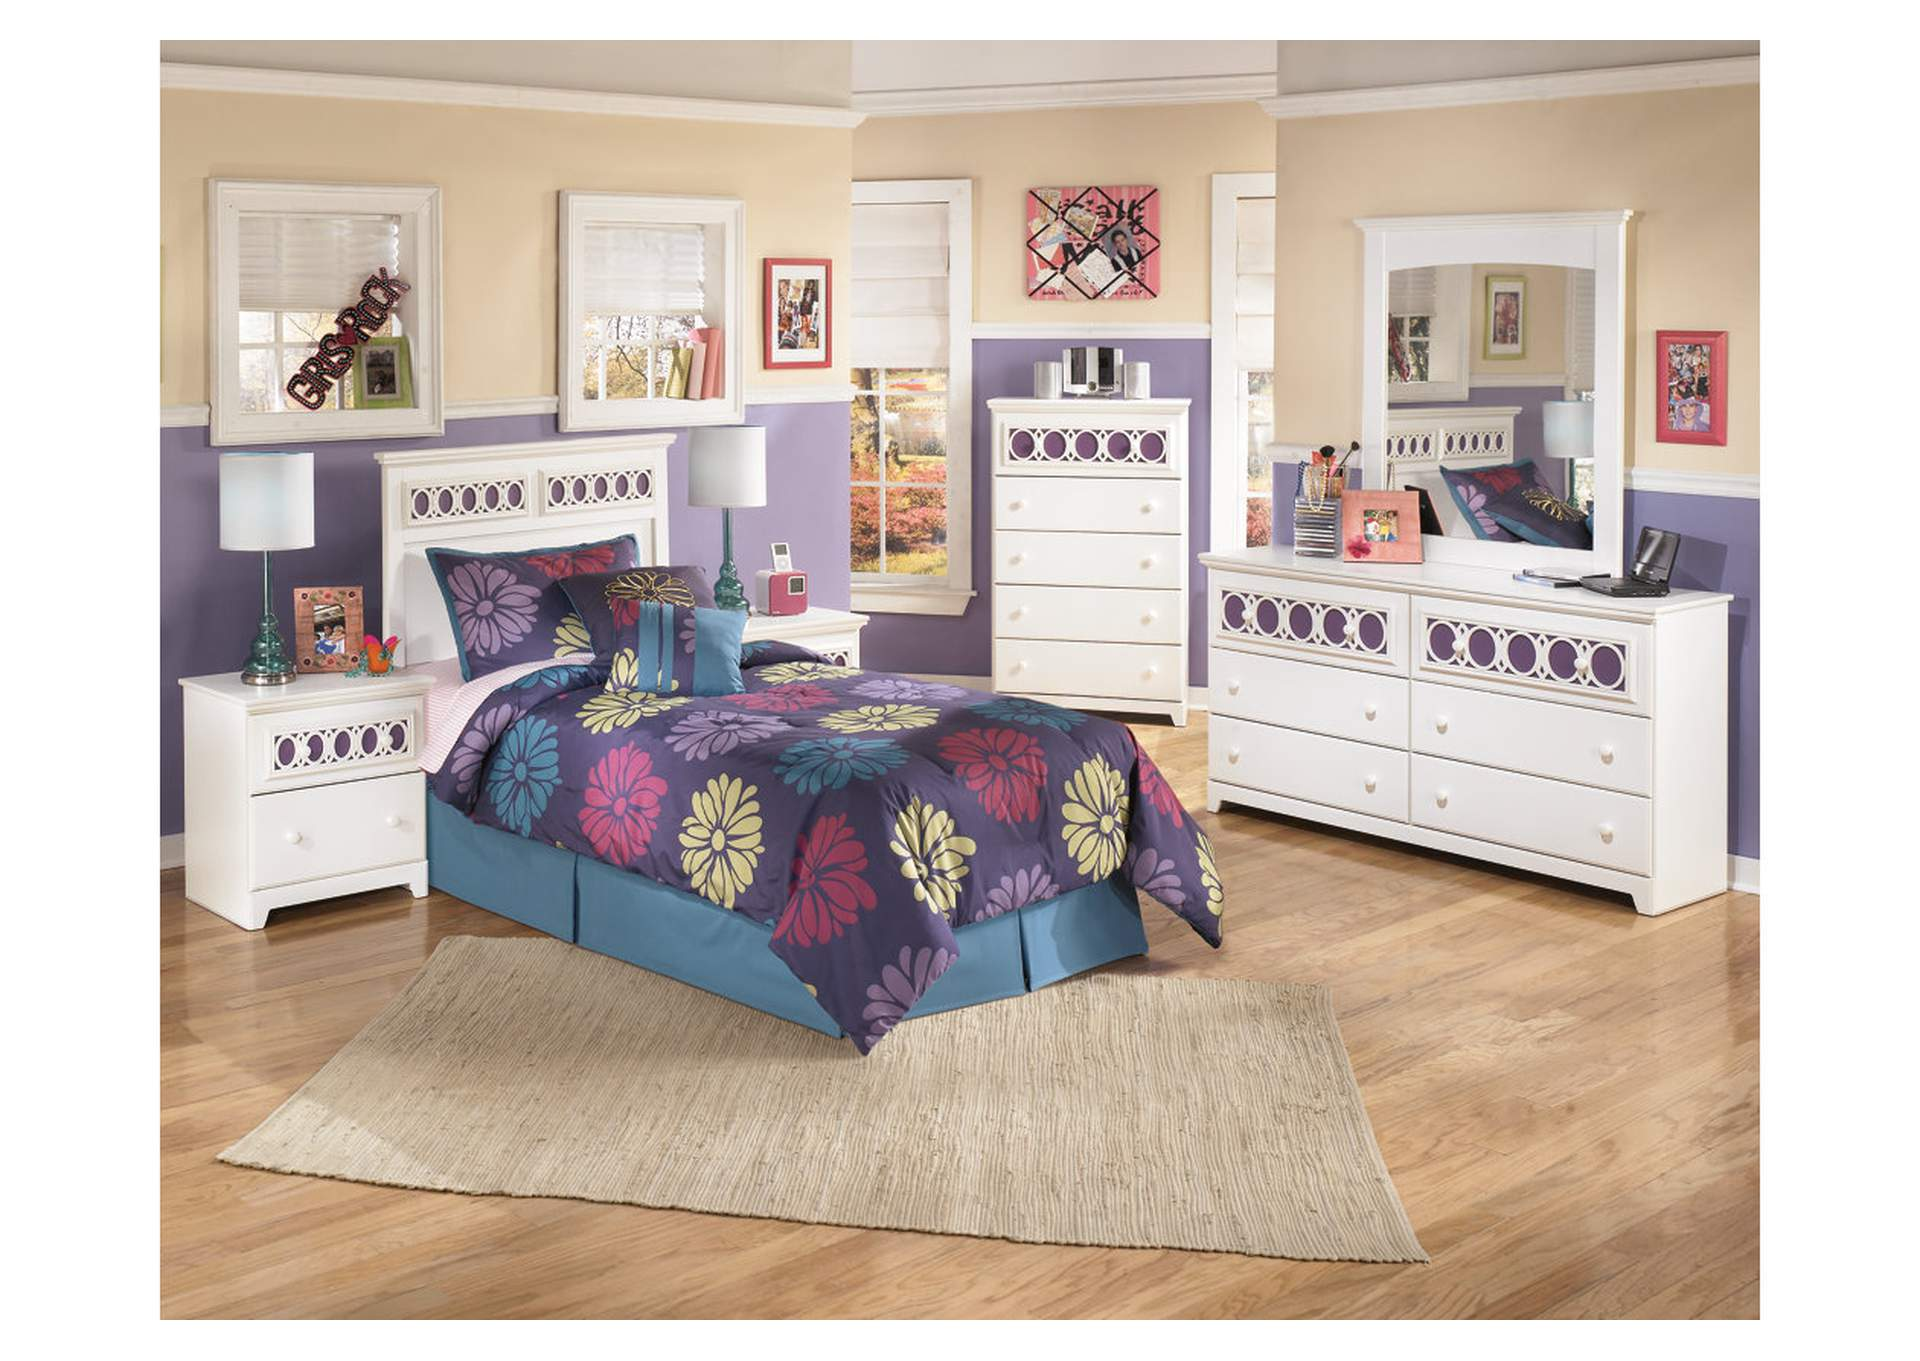 Zayley Twin Panel Headboard, Dresser, Mirror, Chest & Night Stand,Signature Design By Ashley